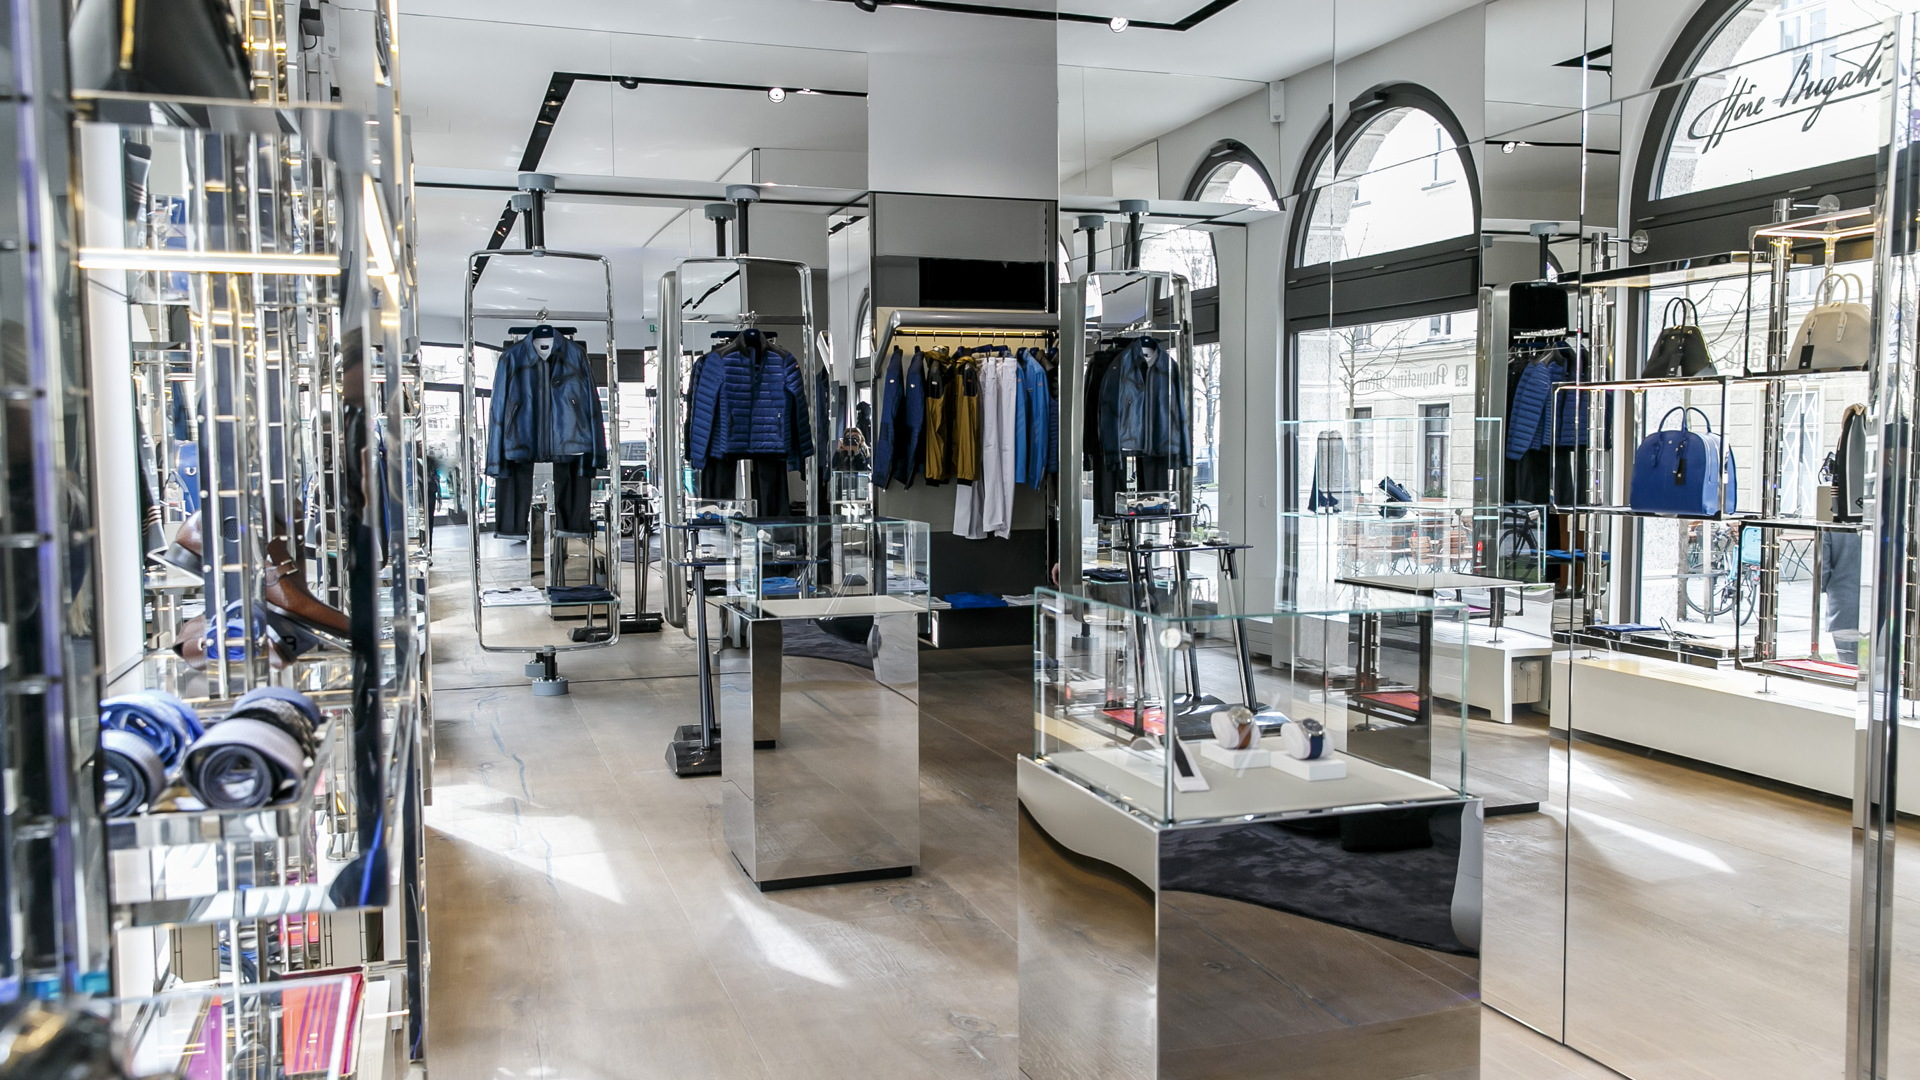 Bugatti Munich boutique and showroom